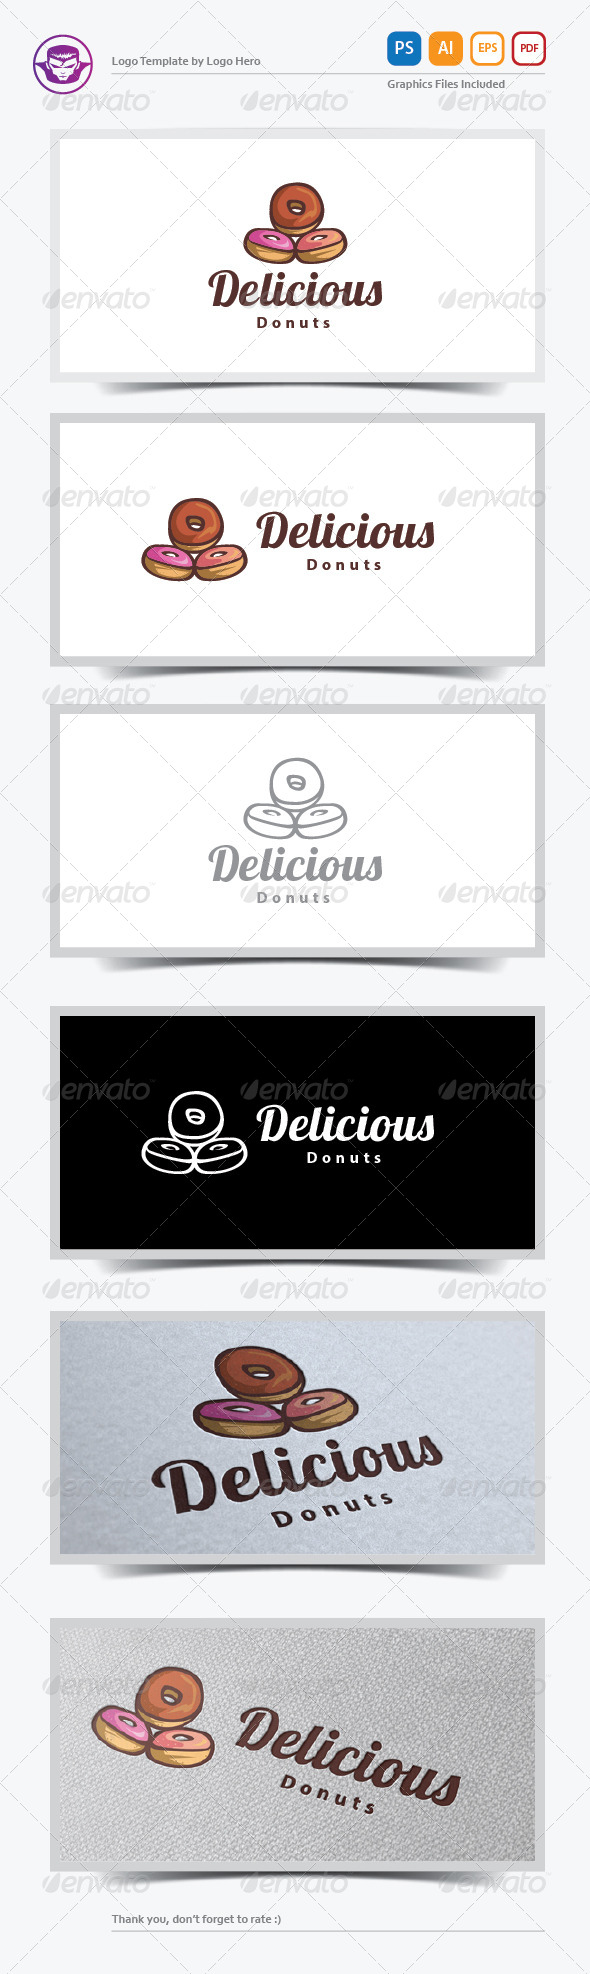 Delicious Donuts Logo Template - Food Logo Templates